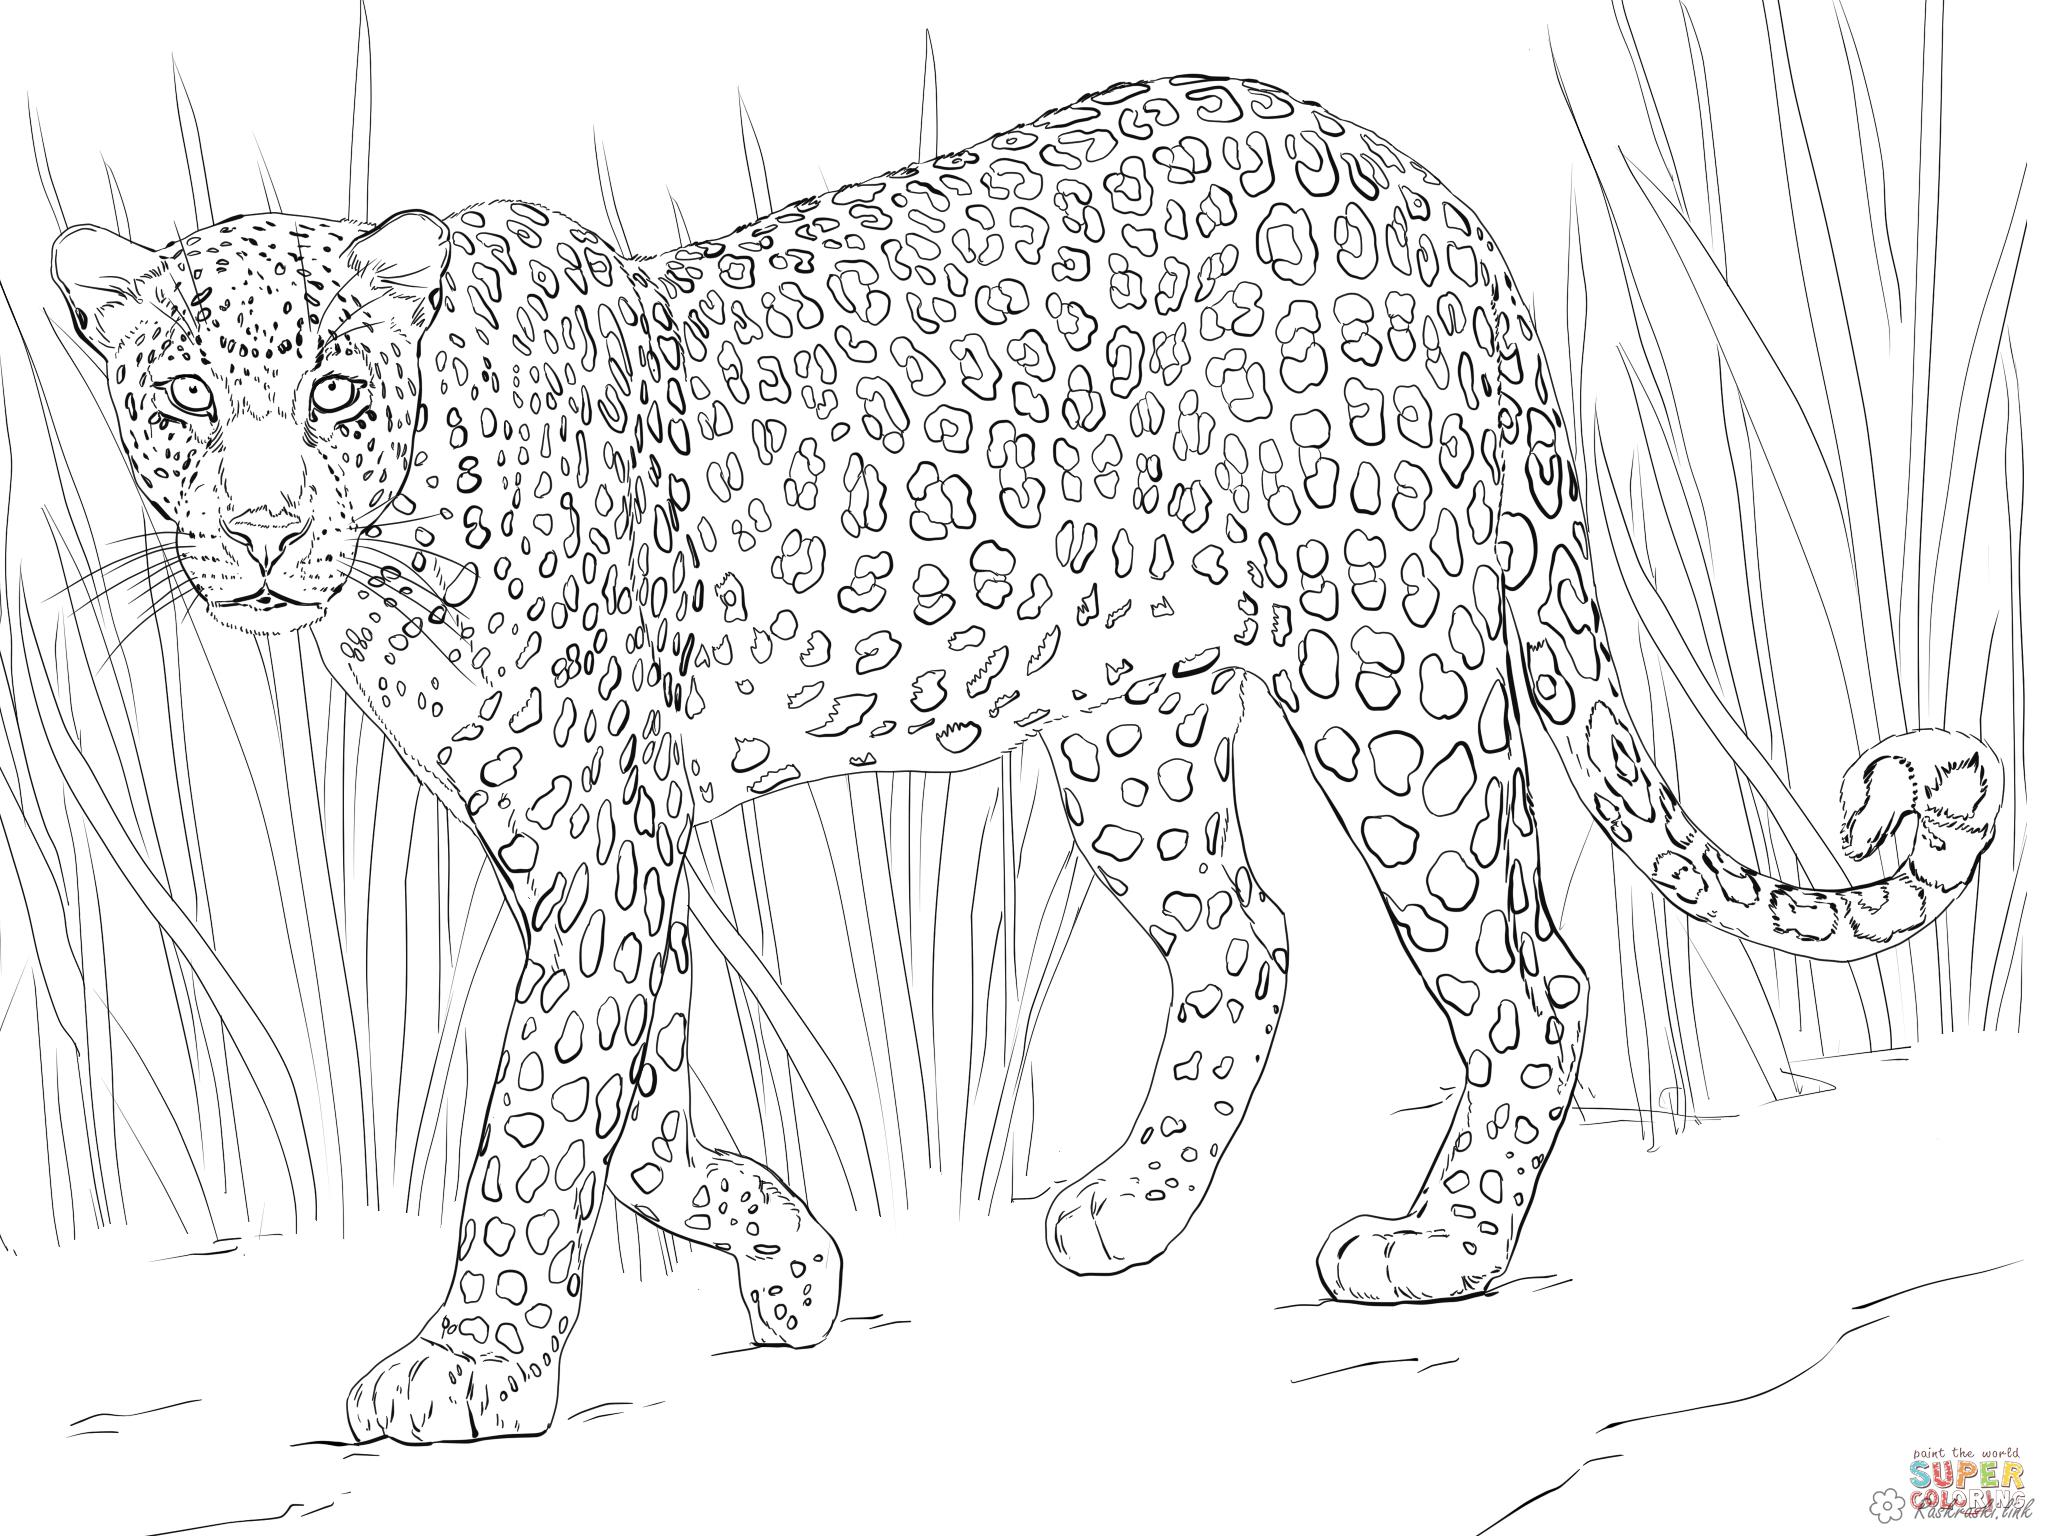 Coloring Panther coloring pages leopard, grass, wild cat, predator